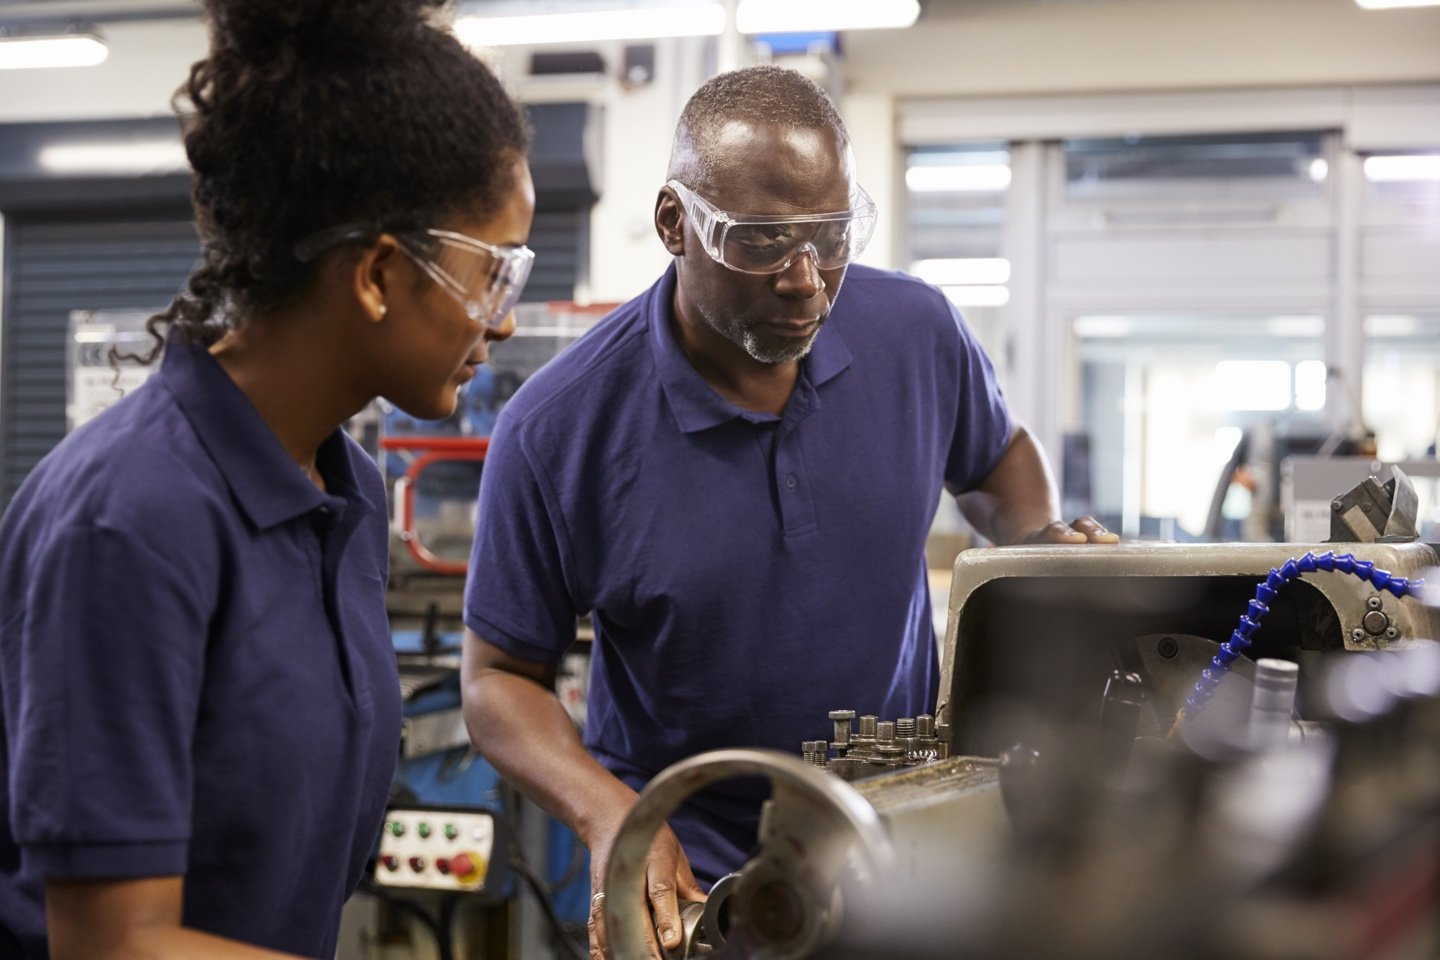 Manufacturing workers using equipment